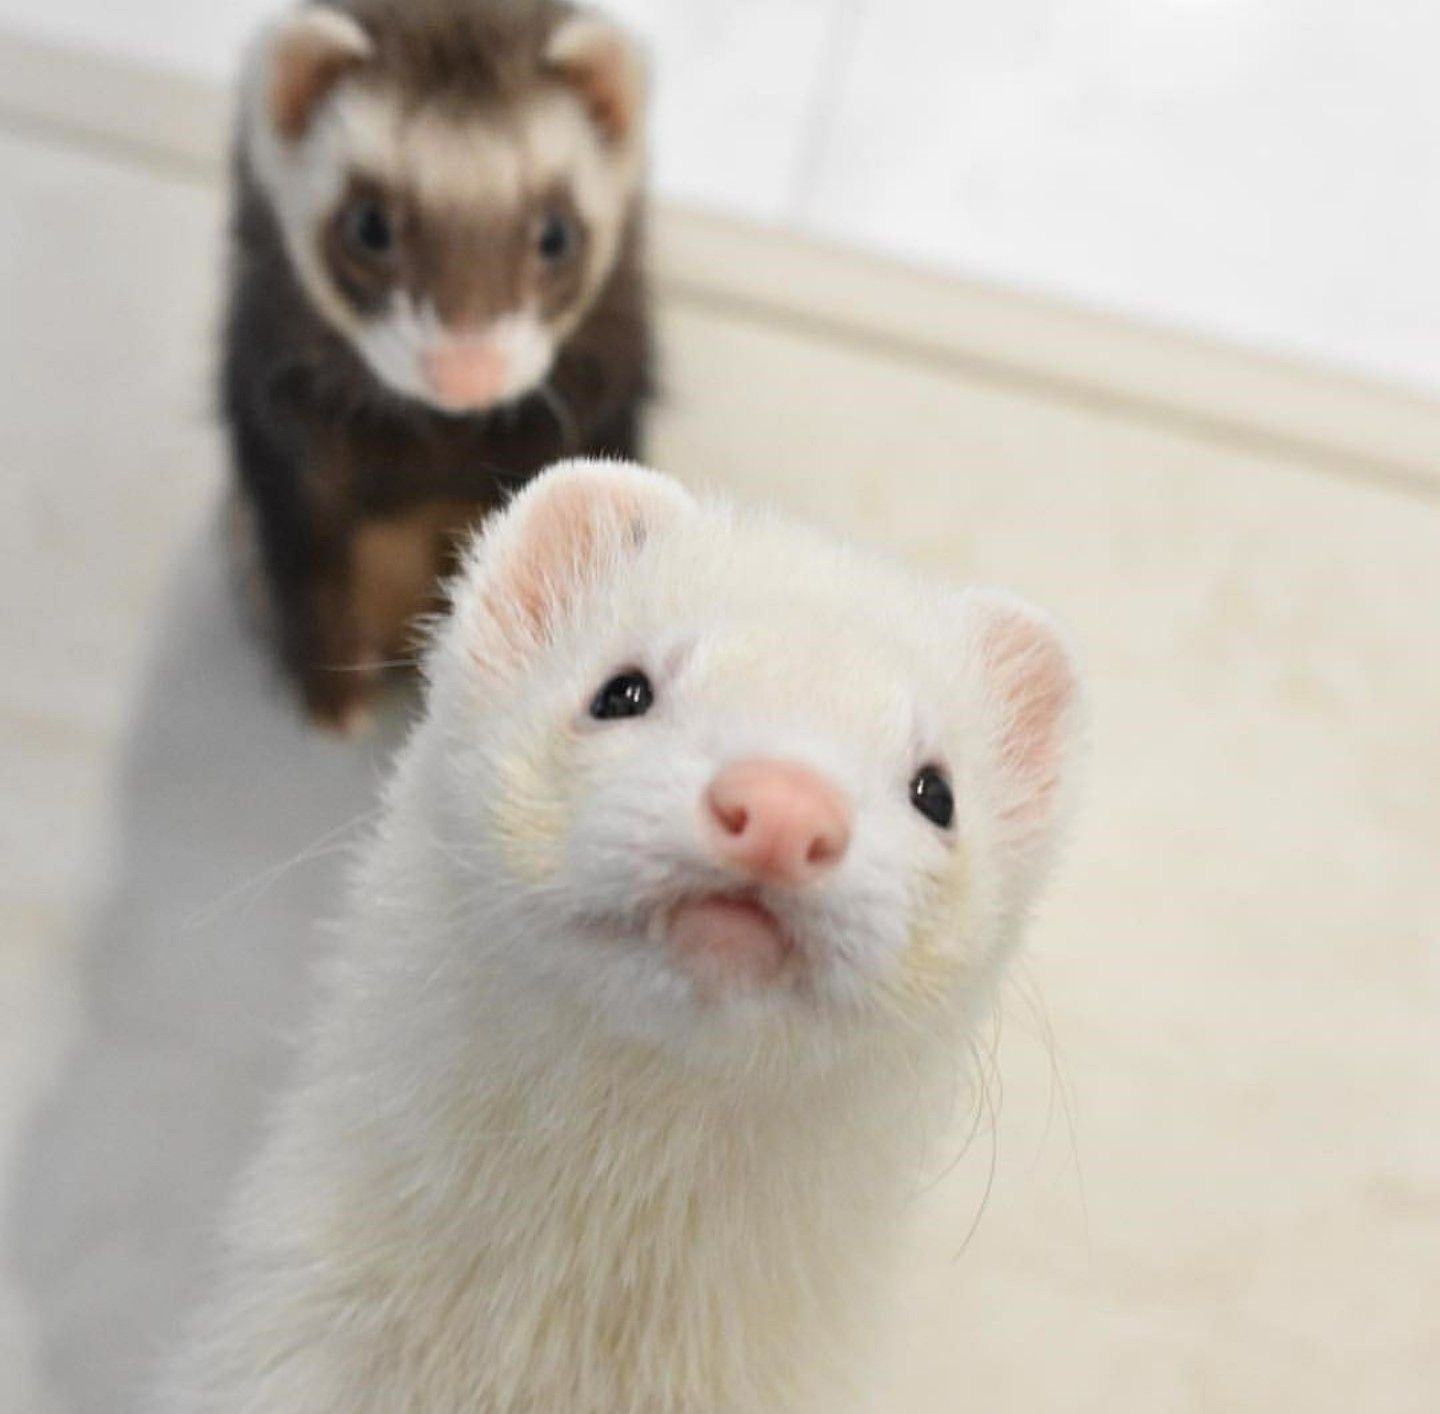 Pin By Paige Gillespie On Fritter Love Cute Ferrets Pet Ferret Pet Rodents